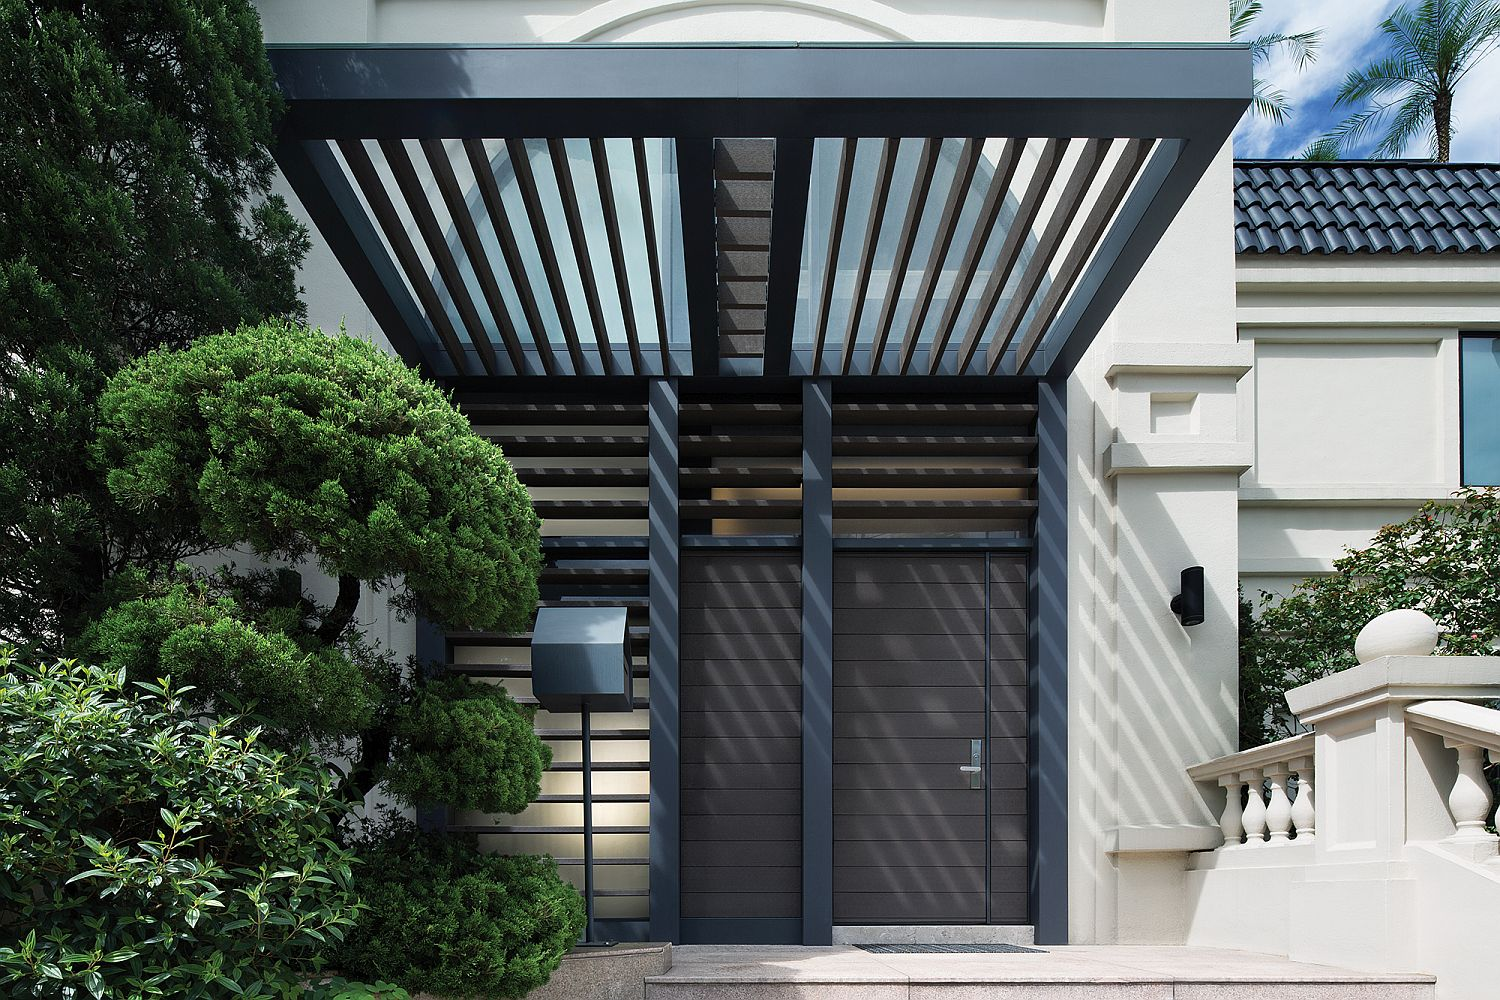 Wood and metal canopy for the front entrance offers shade and creates an interesting facade